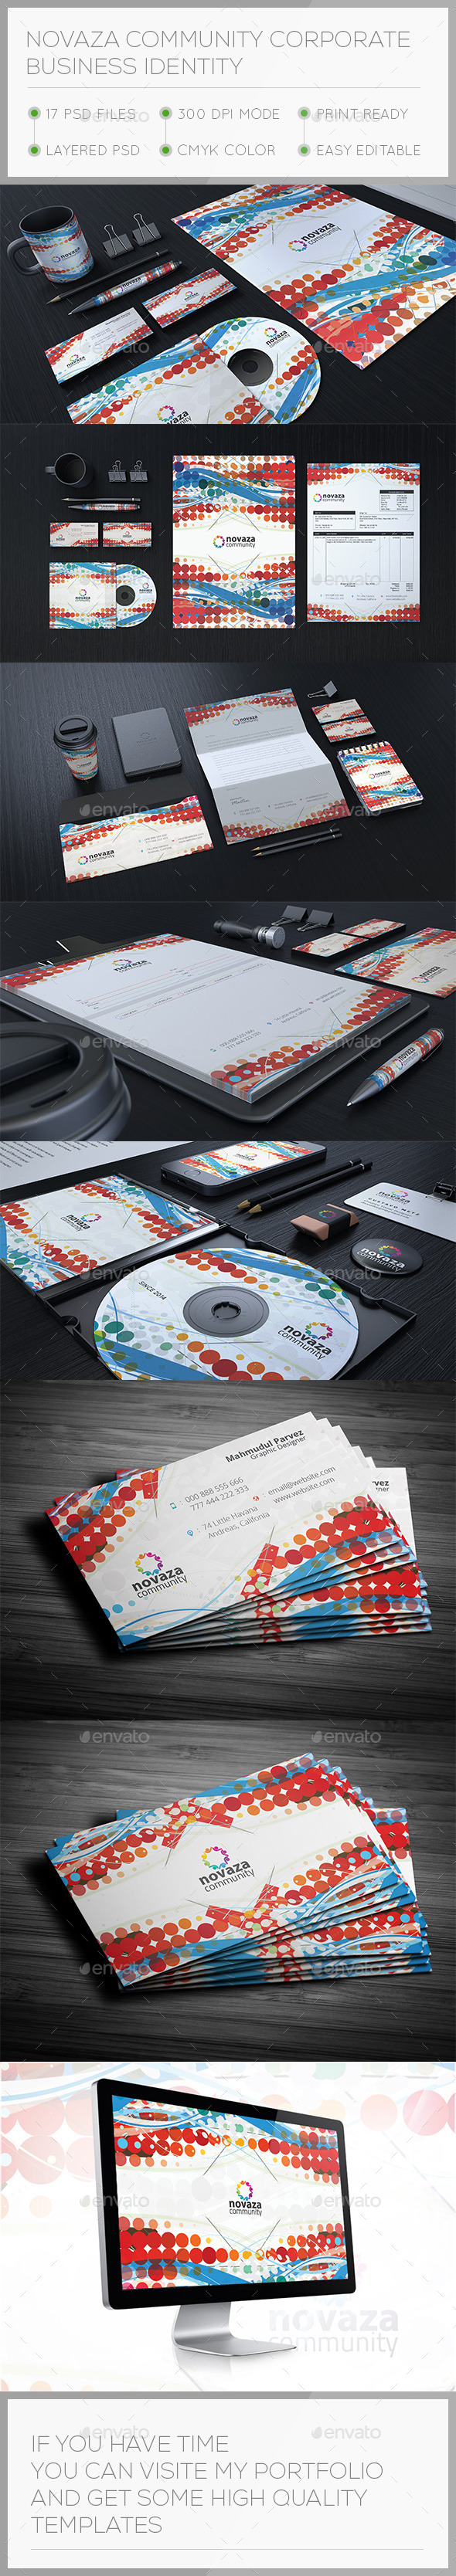 Novaza Corporate Stationary Identity